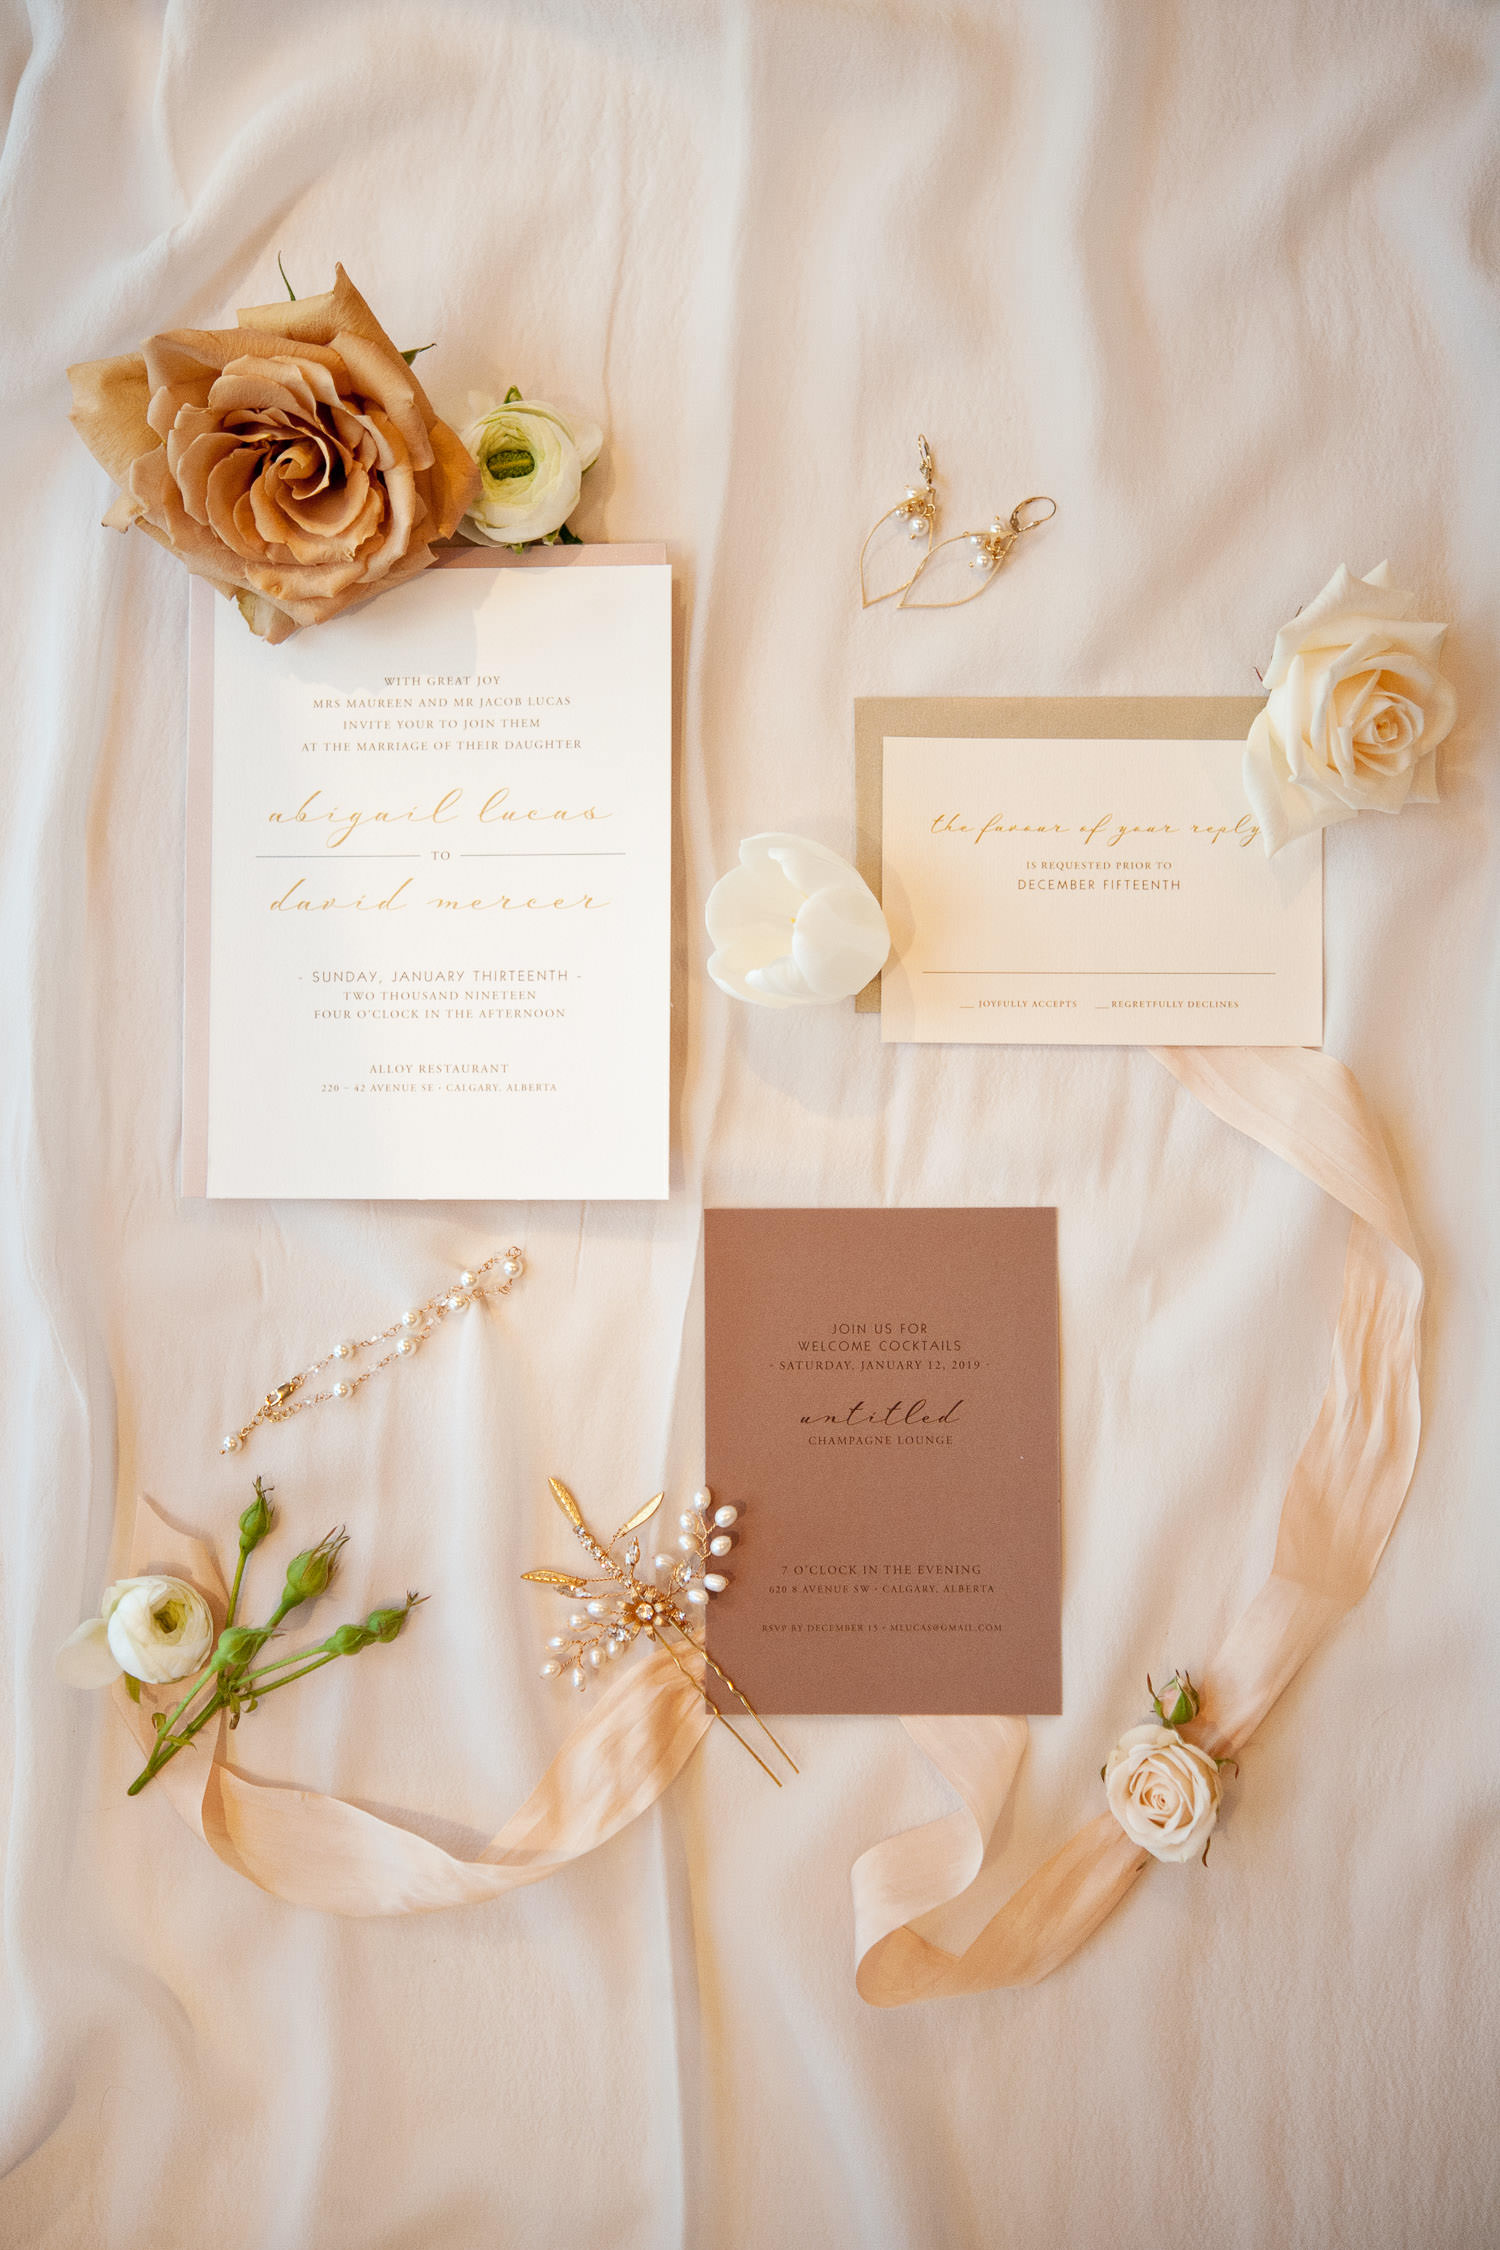 Invitation suite styled with bridal accessories captured by Tara Whittaker Photography